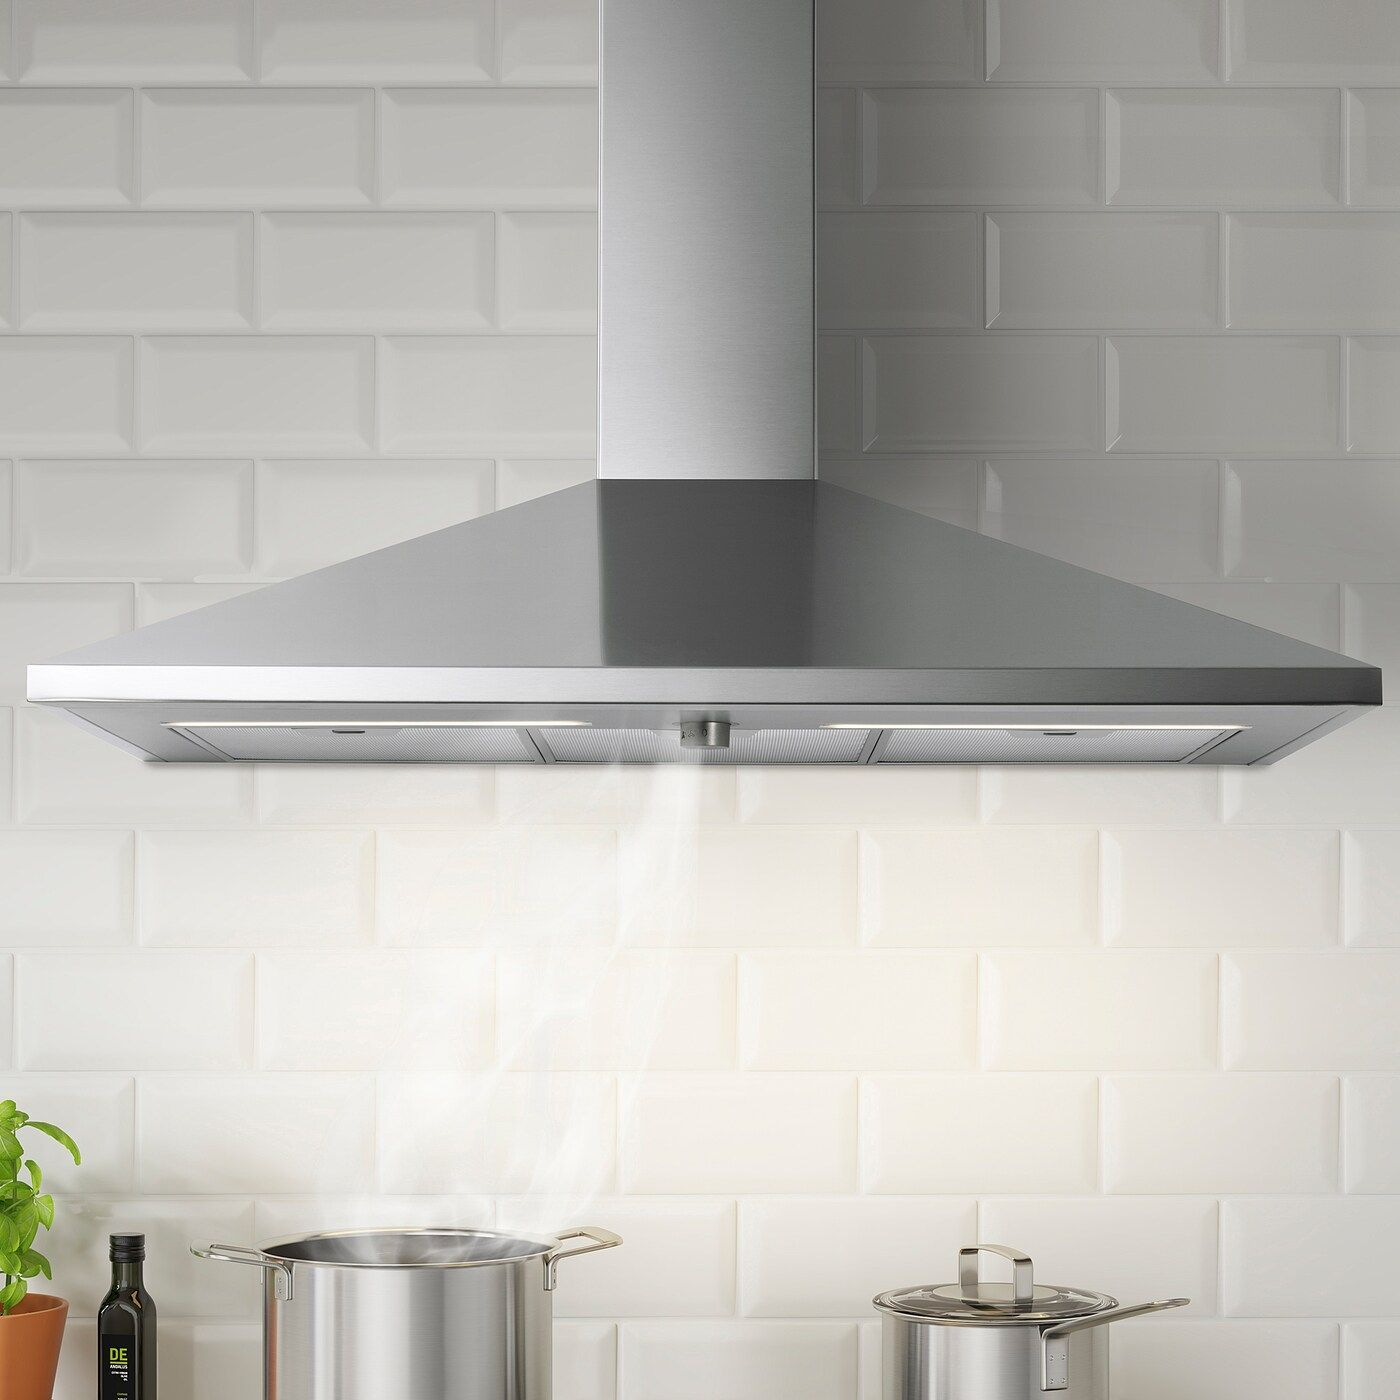 Ikea Rytmisk Extractor Hood For Wall Mounting Stainless Steel Classic Extractor Hood With All Basic Functio In 2020 Dunstabzugshaube Led Leuchtmittel Ikea Savedal